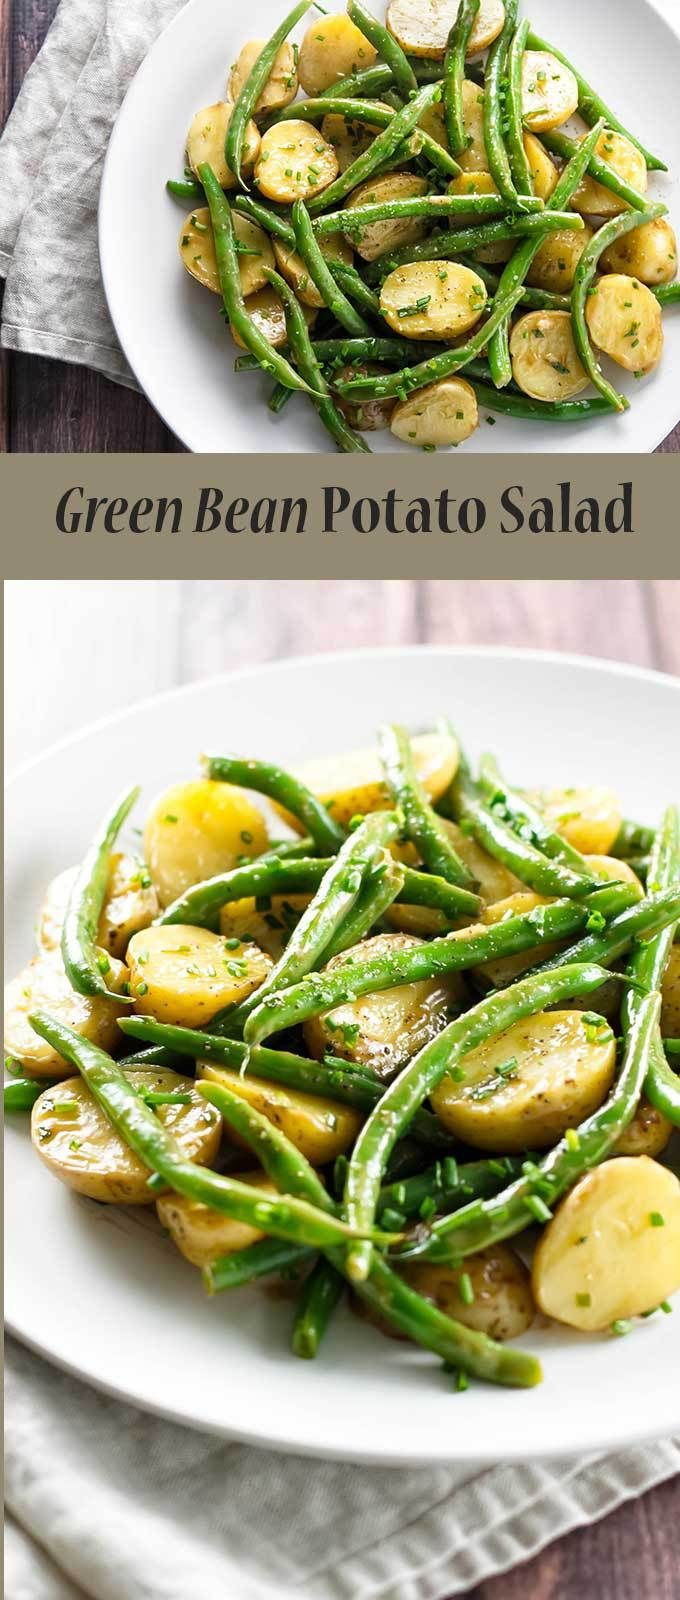 Green Bean Potato Salad is the perfect side dish for any season | girlgonegourmet.com